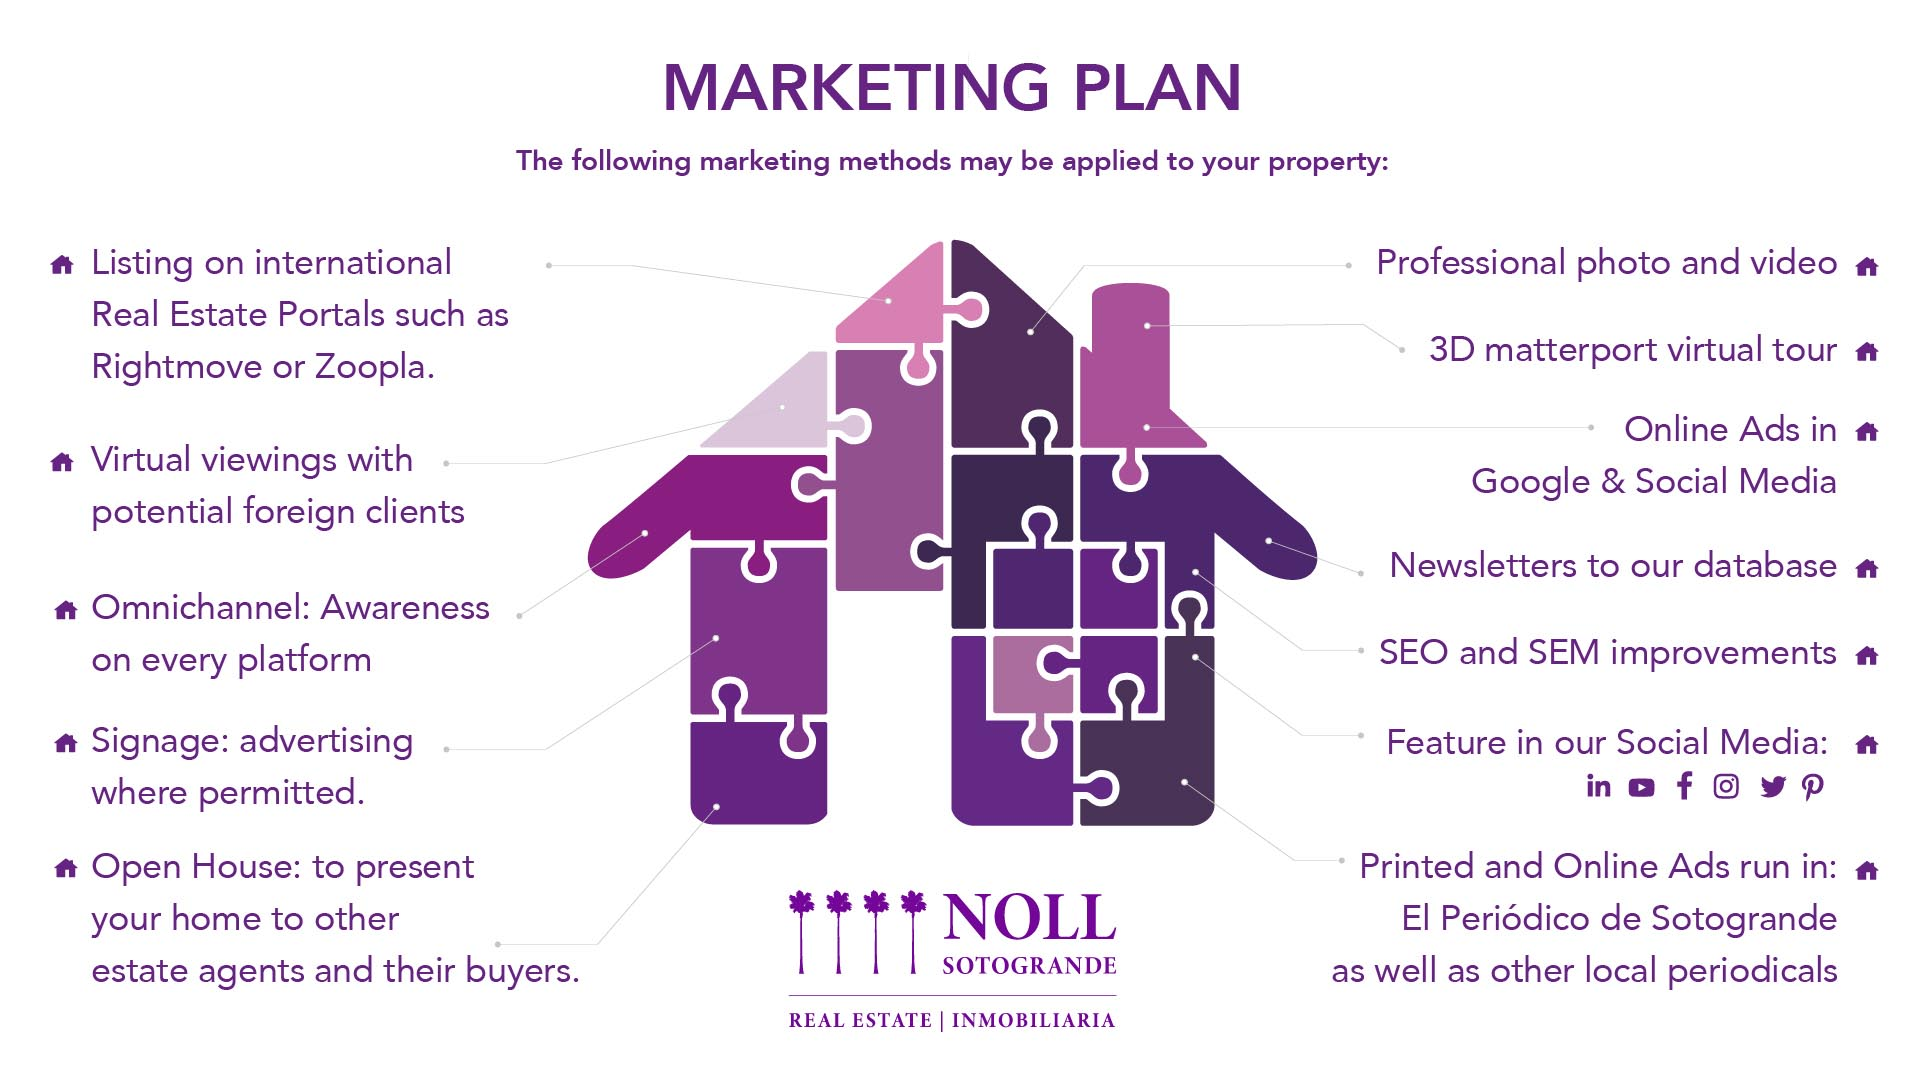 Noll Sotogrande Real Estate methods of marketing that can be applied to your Sotogrande Property.